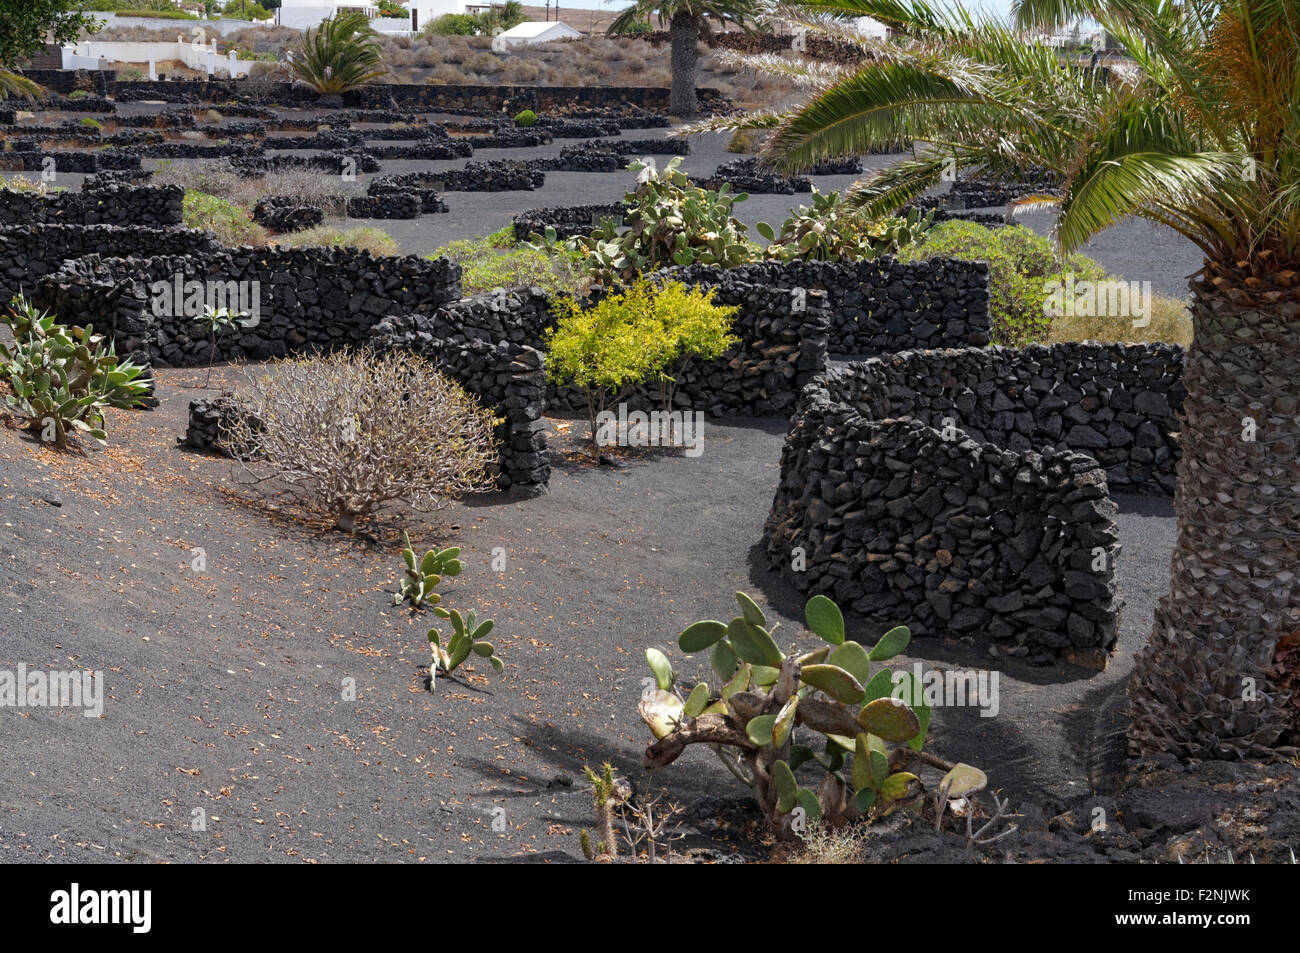 Zocos semi cirular walls of lava used to protect plans from the prevailing wind, Fundacion Cesar Manrique, Teguise, - Stock Image